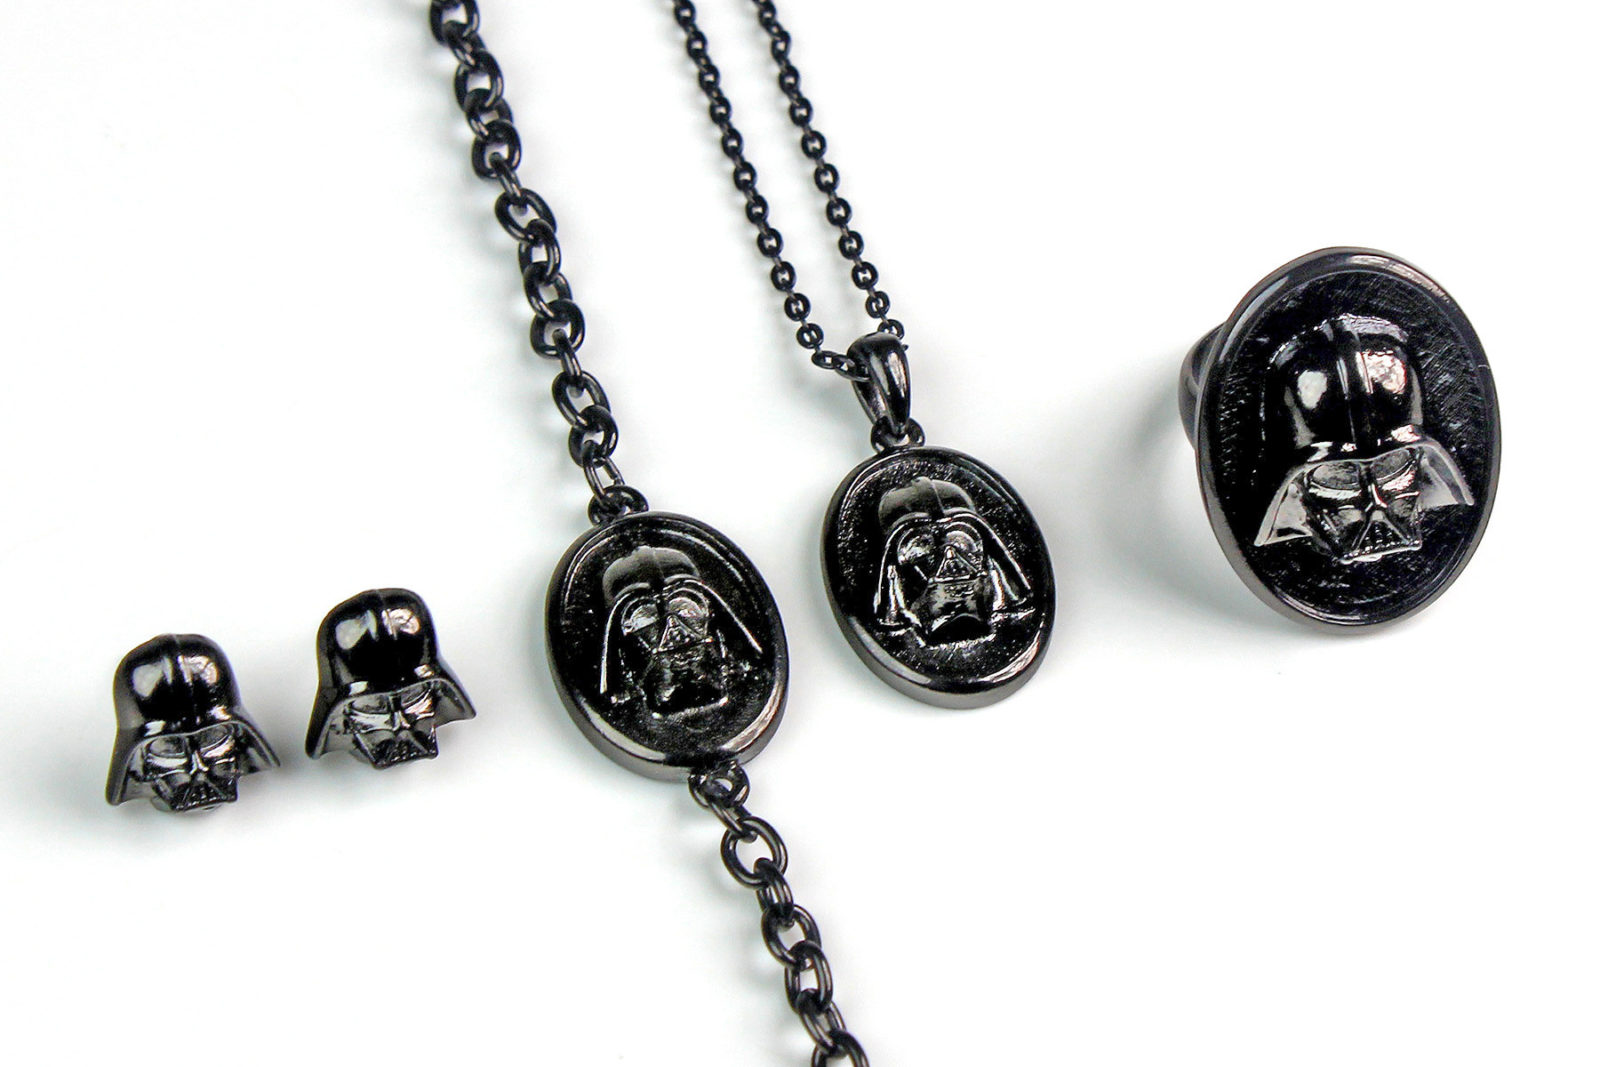 Review – Darth Vader jewelry